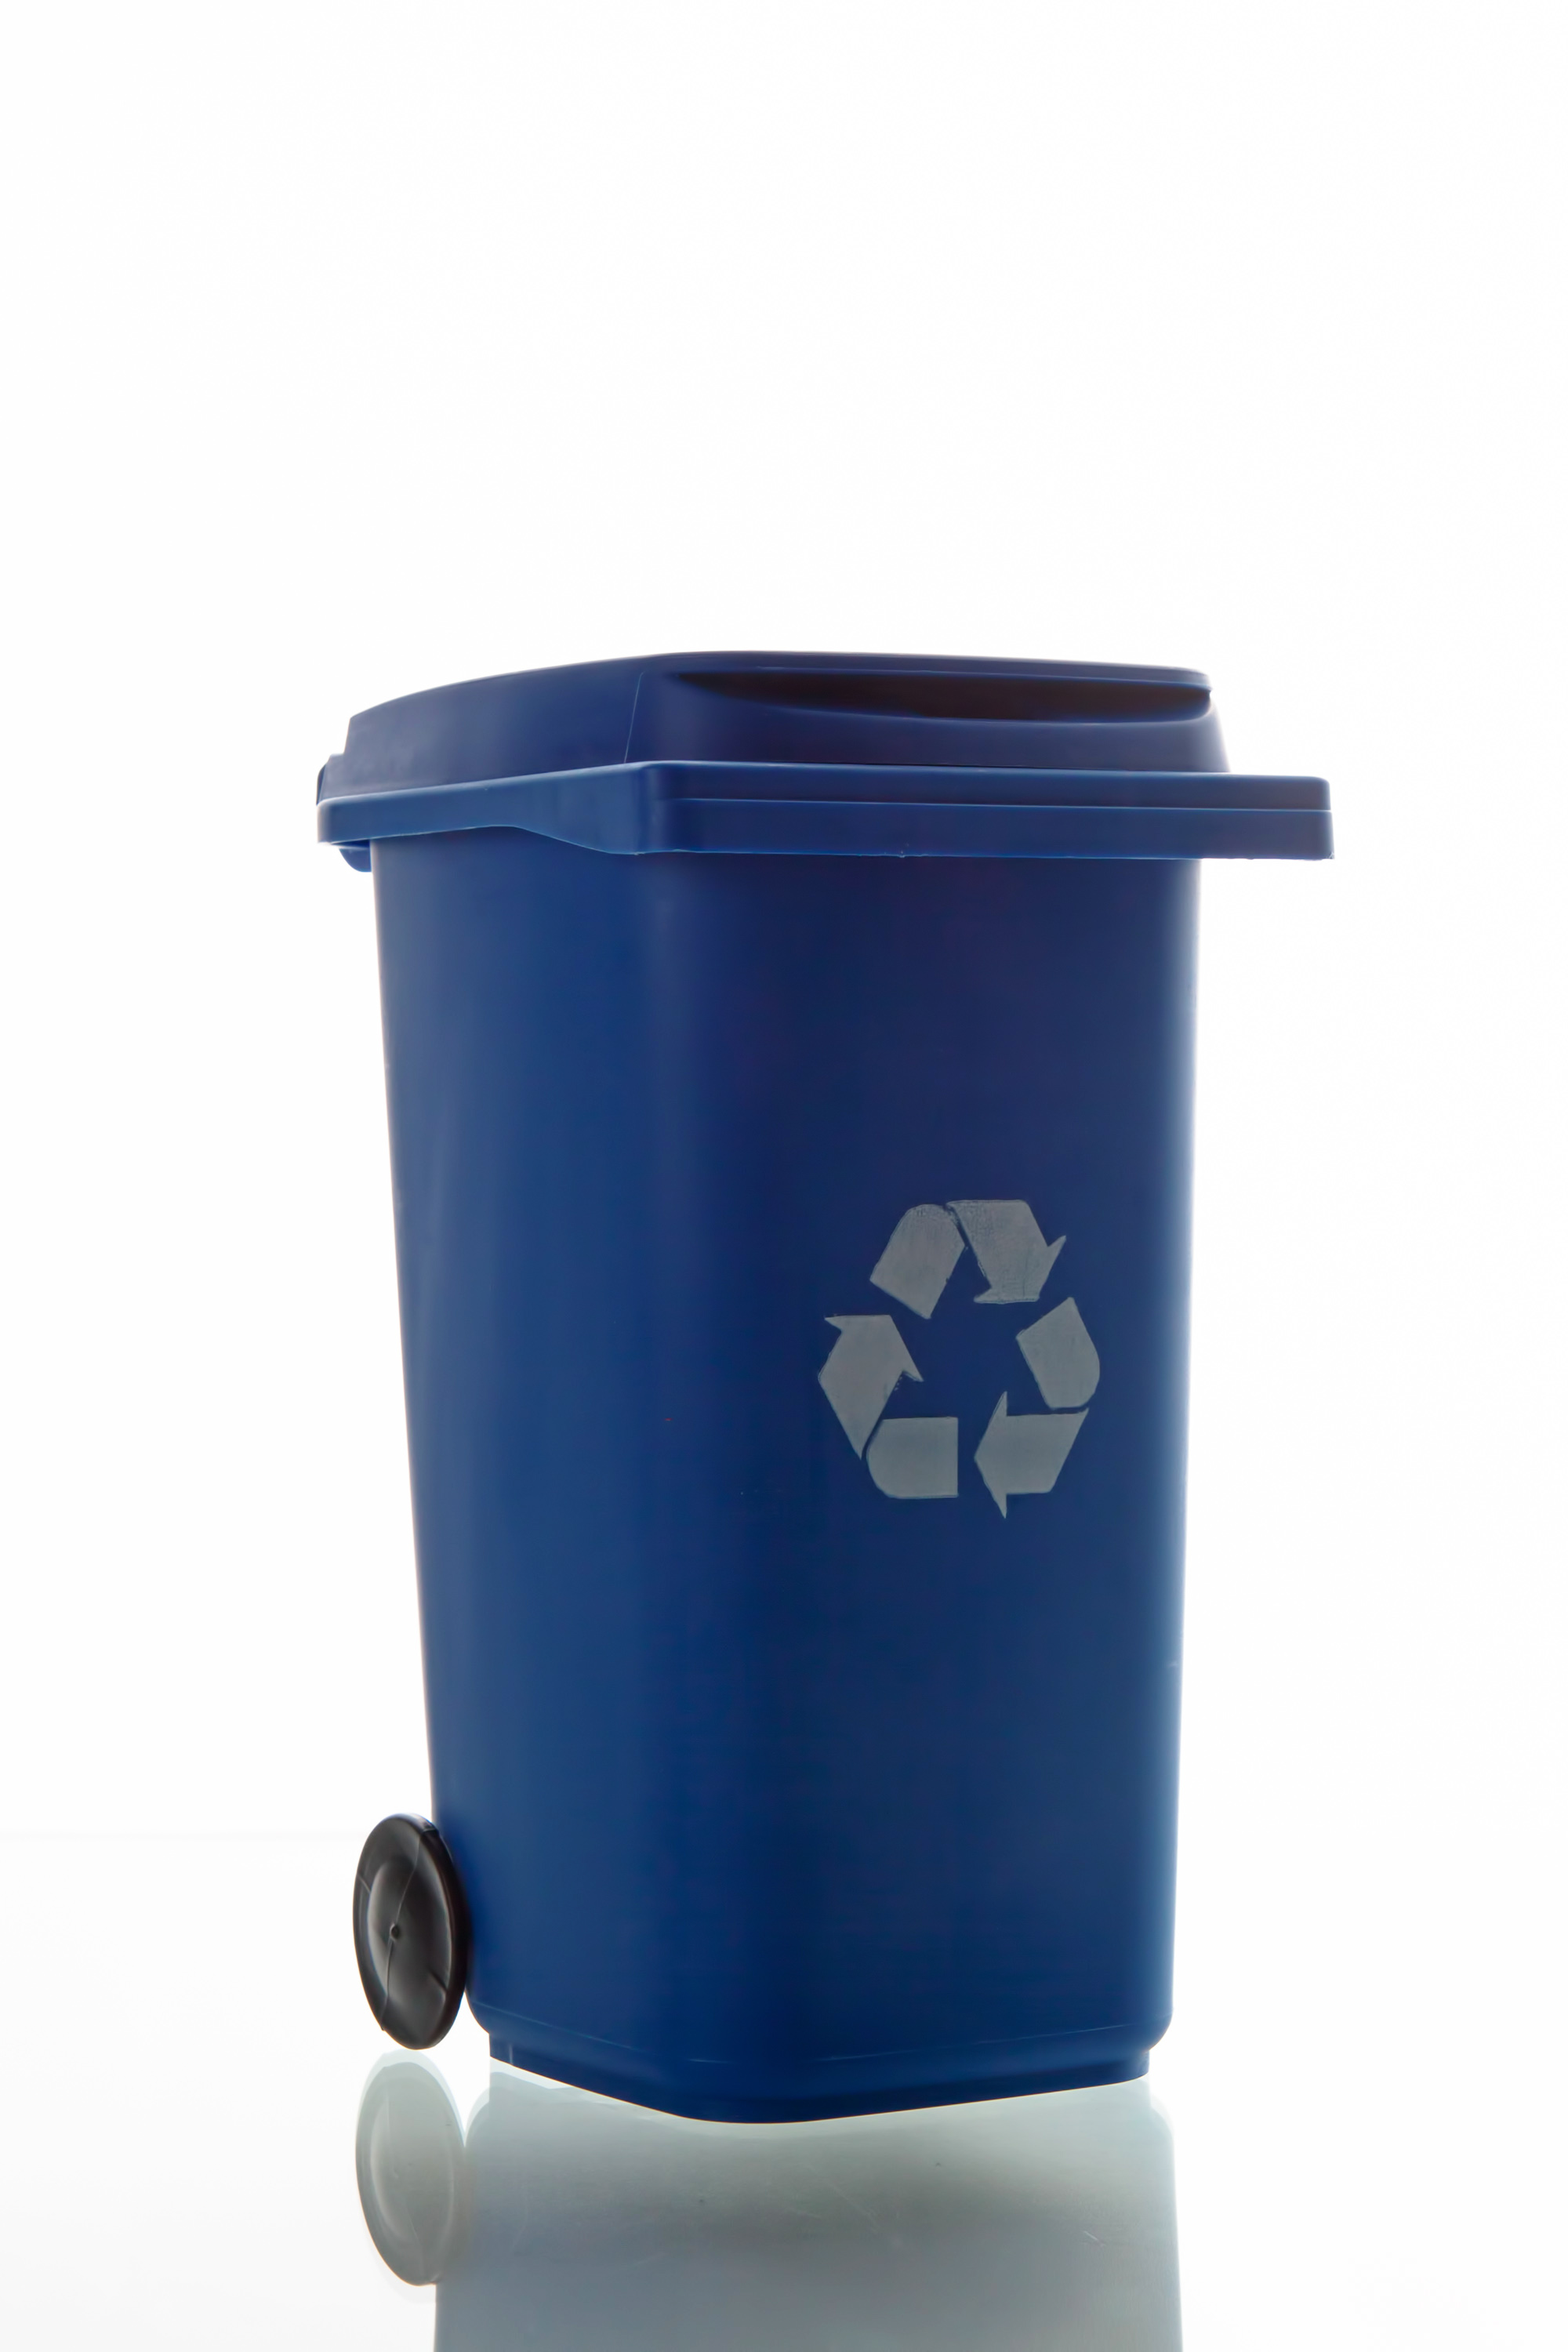 Recycle bin, Recycling, Isolated, Manufacture, Plastic, HQ Photo